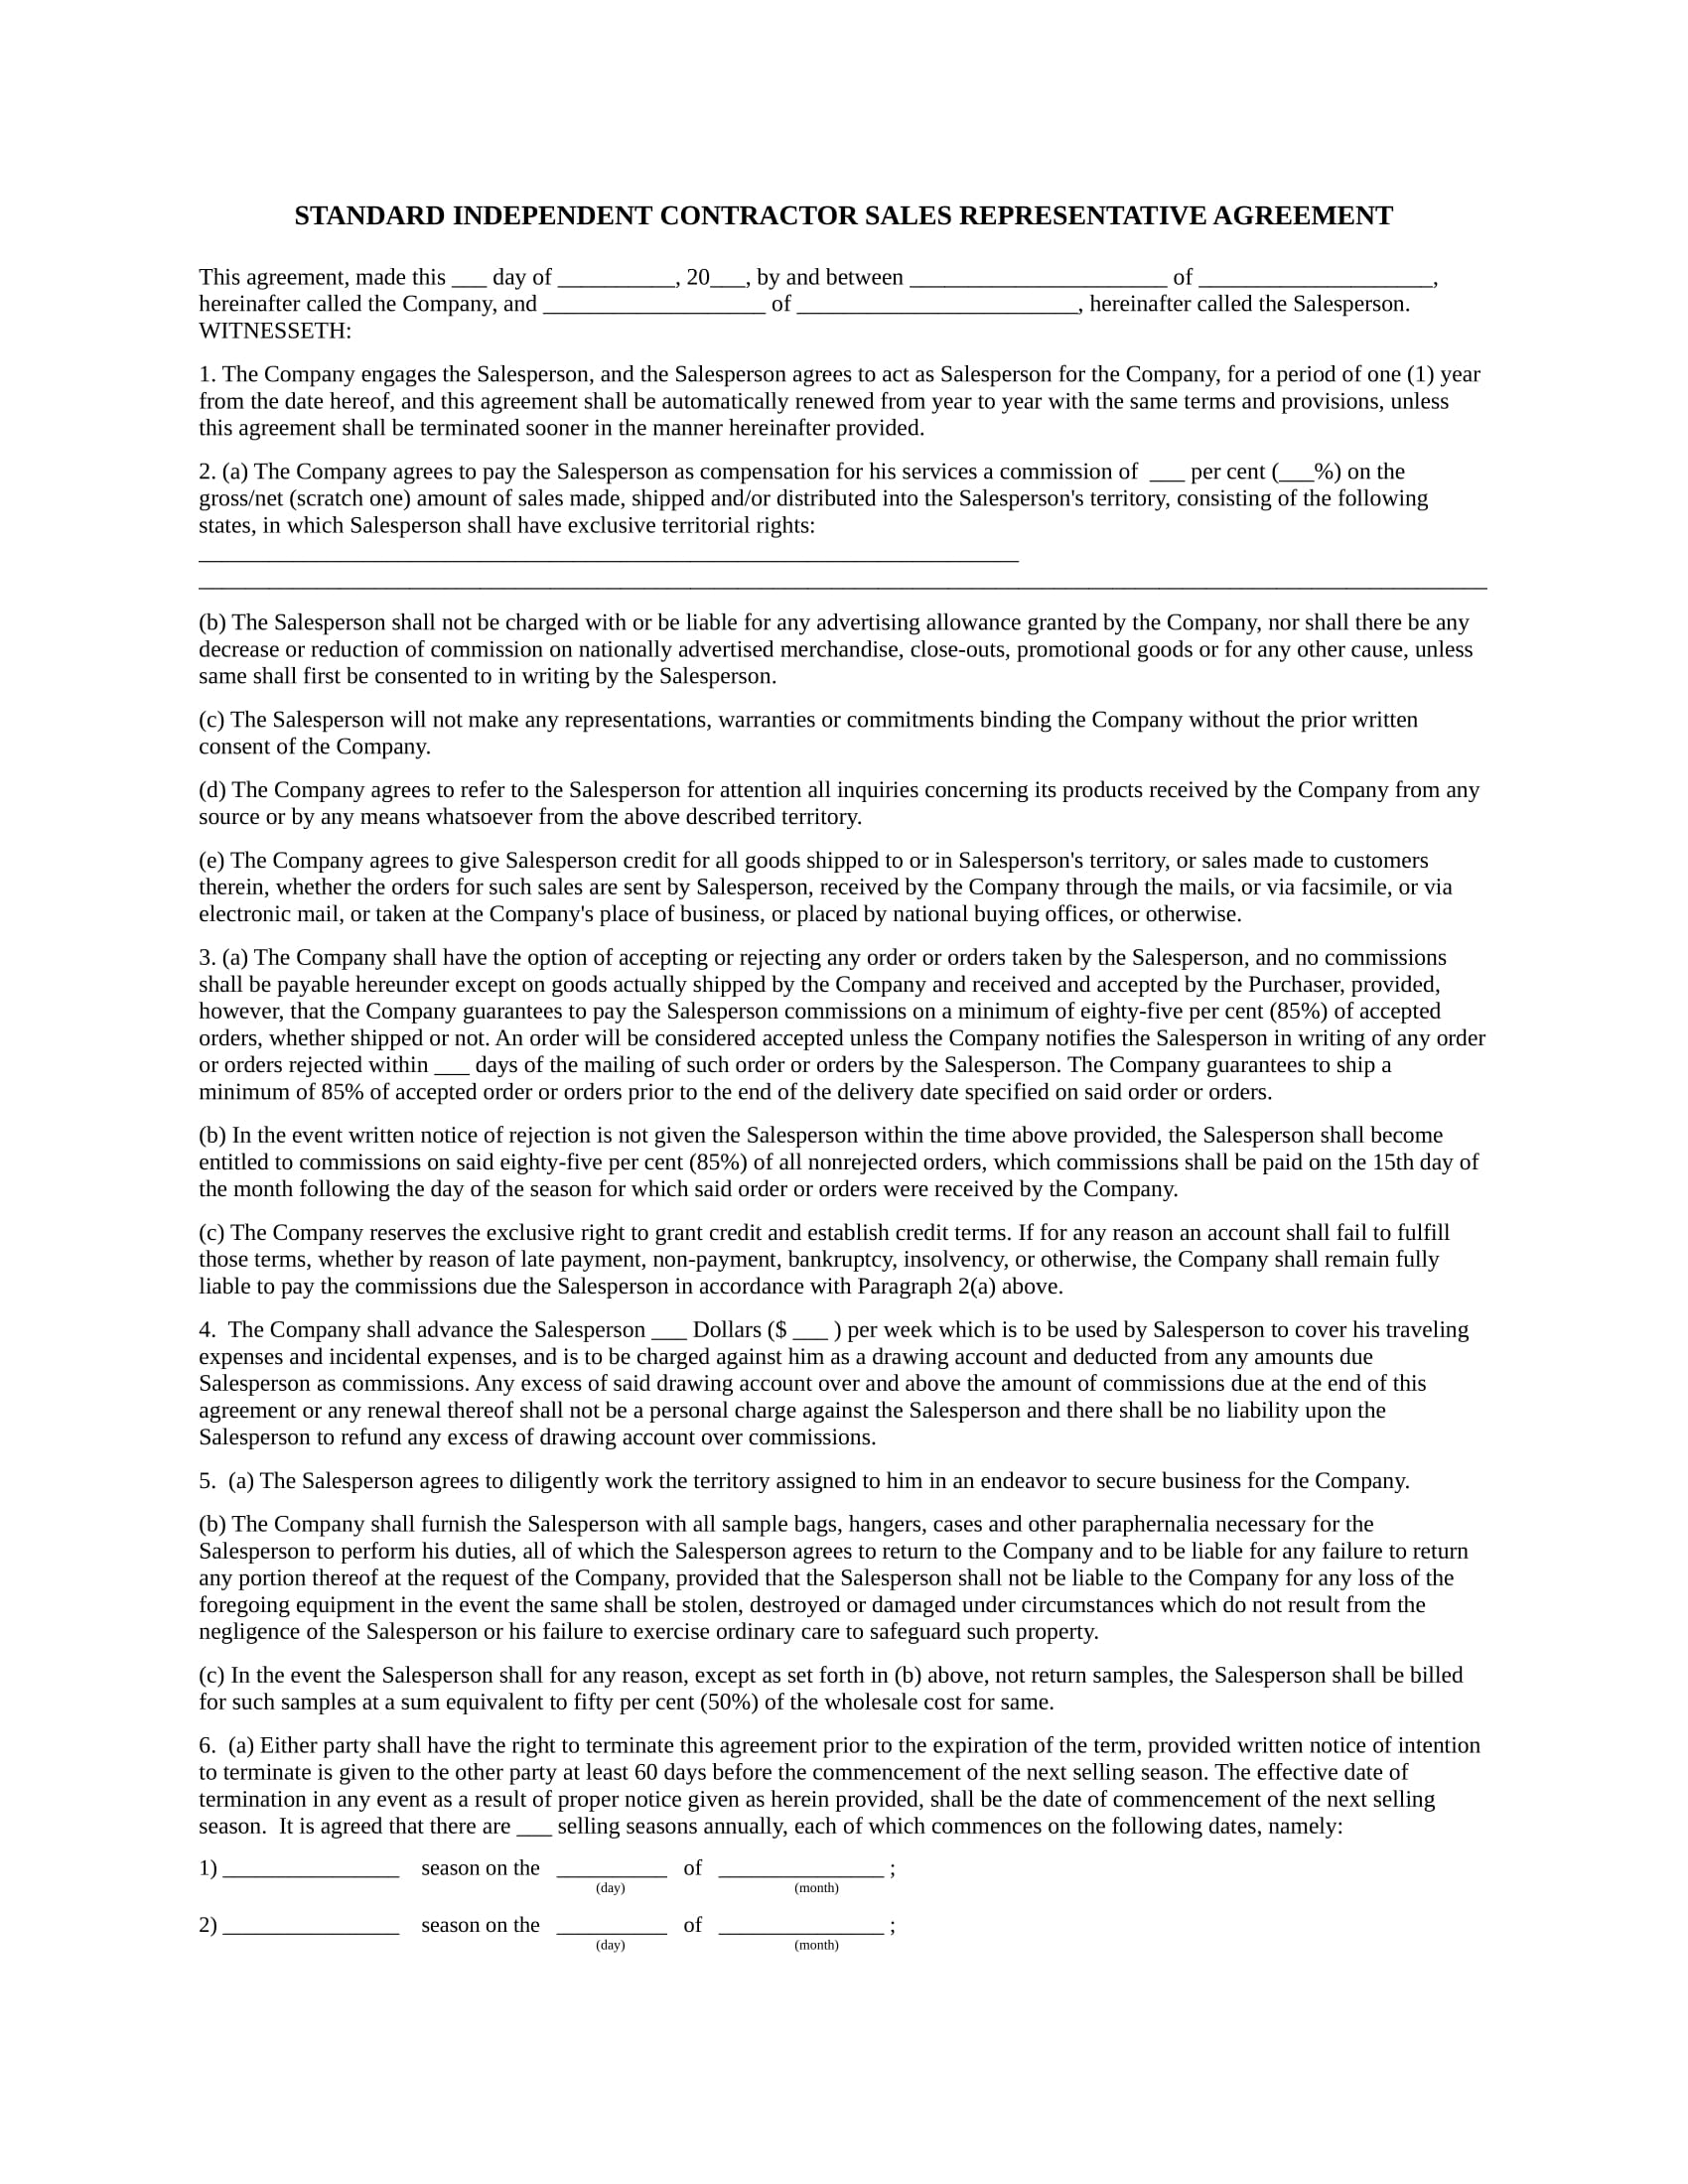 contractor salesperson representative agreement contract form in doc 1